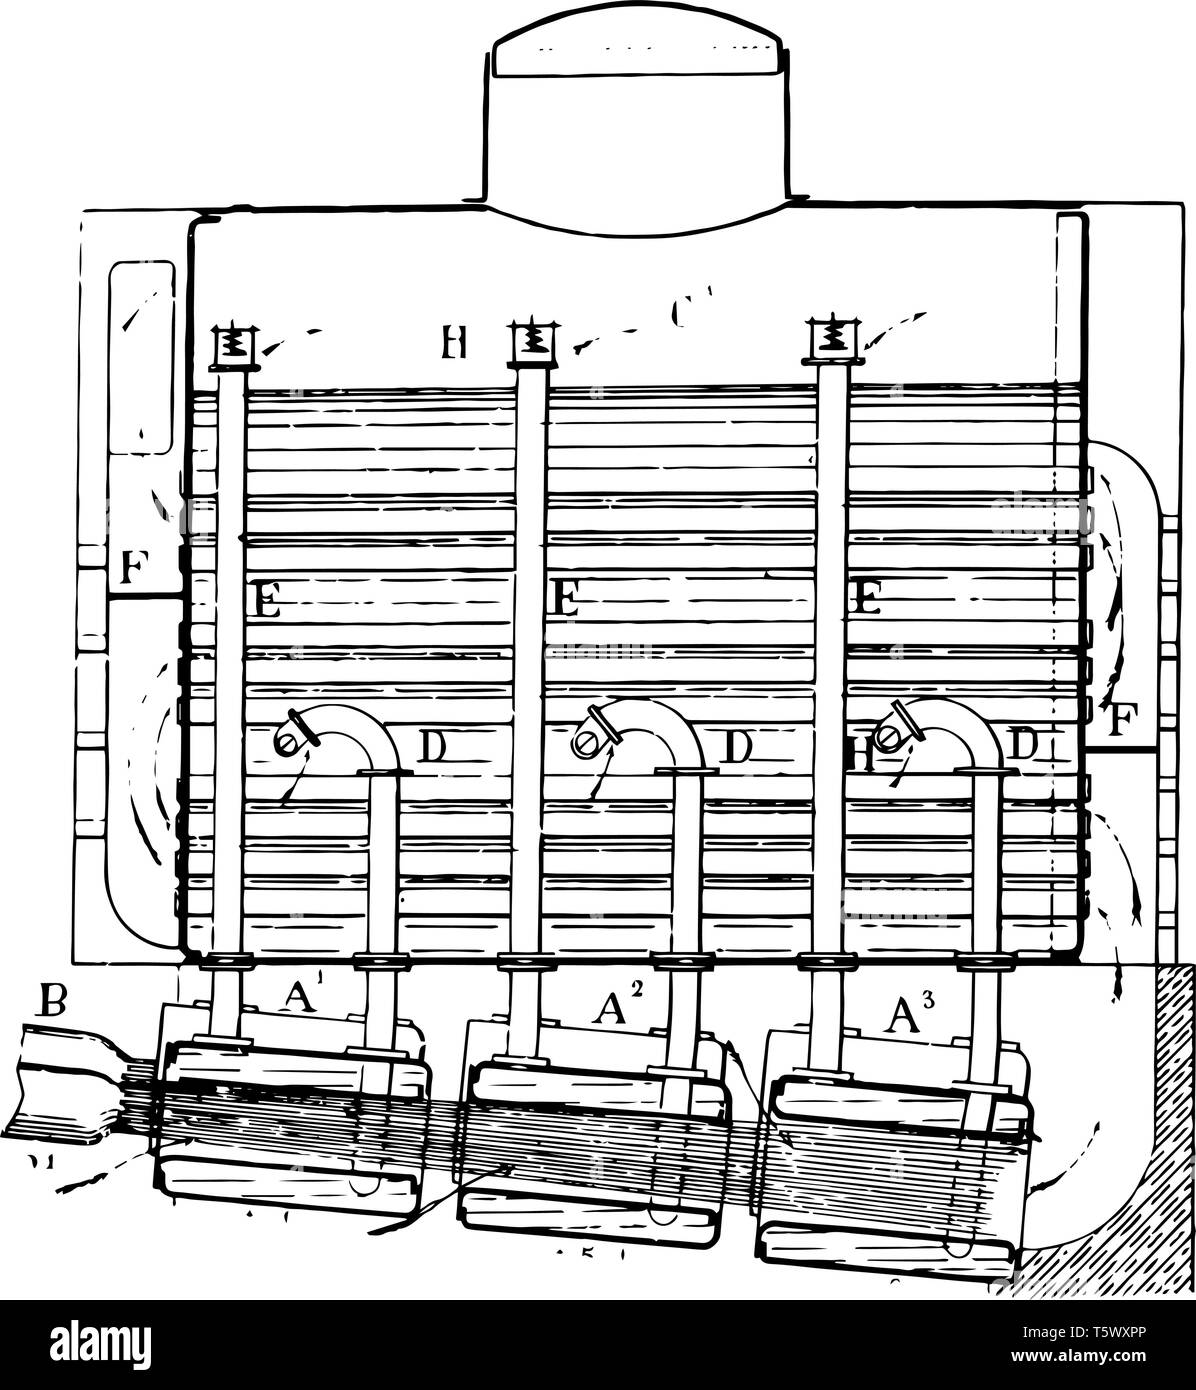 hight resolution of this illustration represents boiler combination steam generator which is used to boil water to create steam